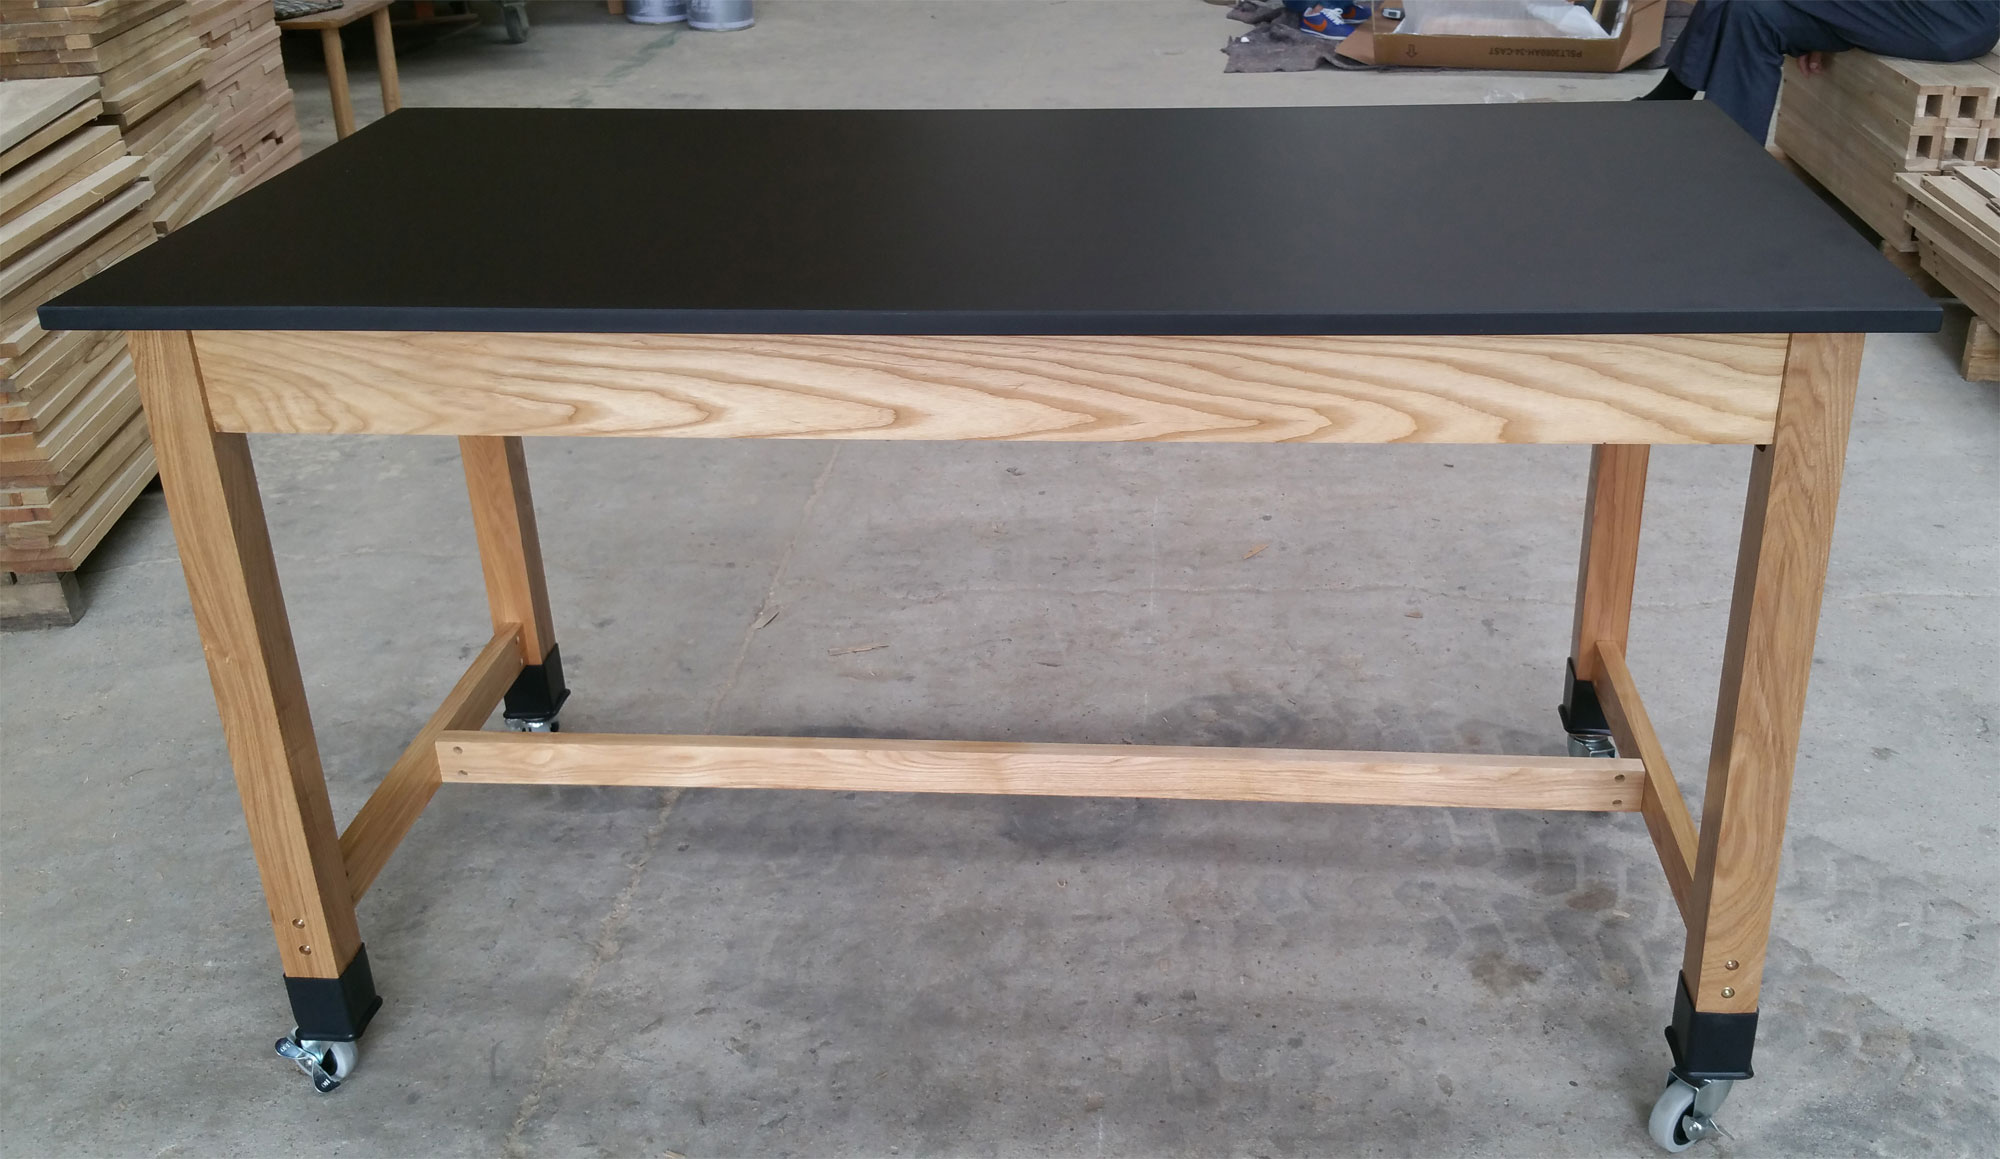 Phenolic Resin Top Science Lab Table: school lab furniture, moving lab table w/ 4 locking casters